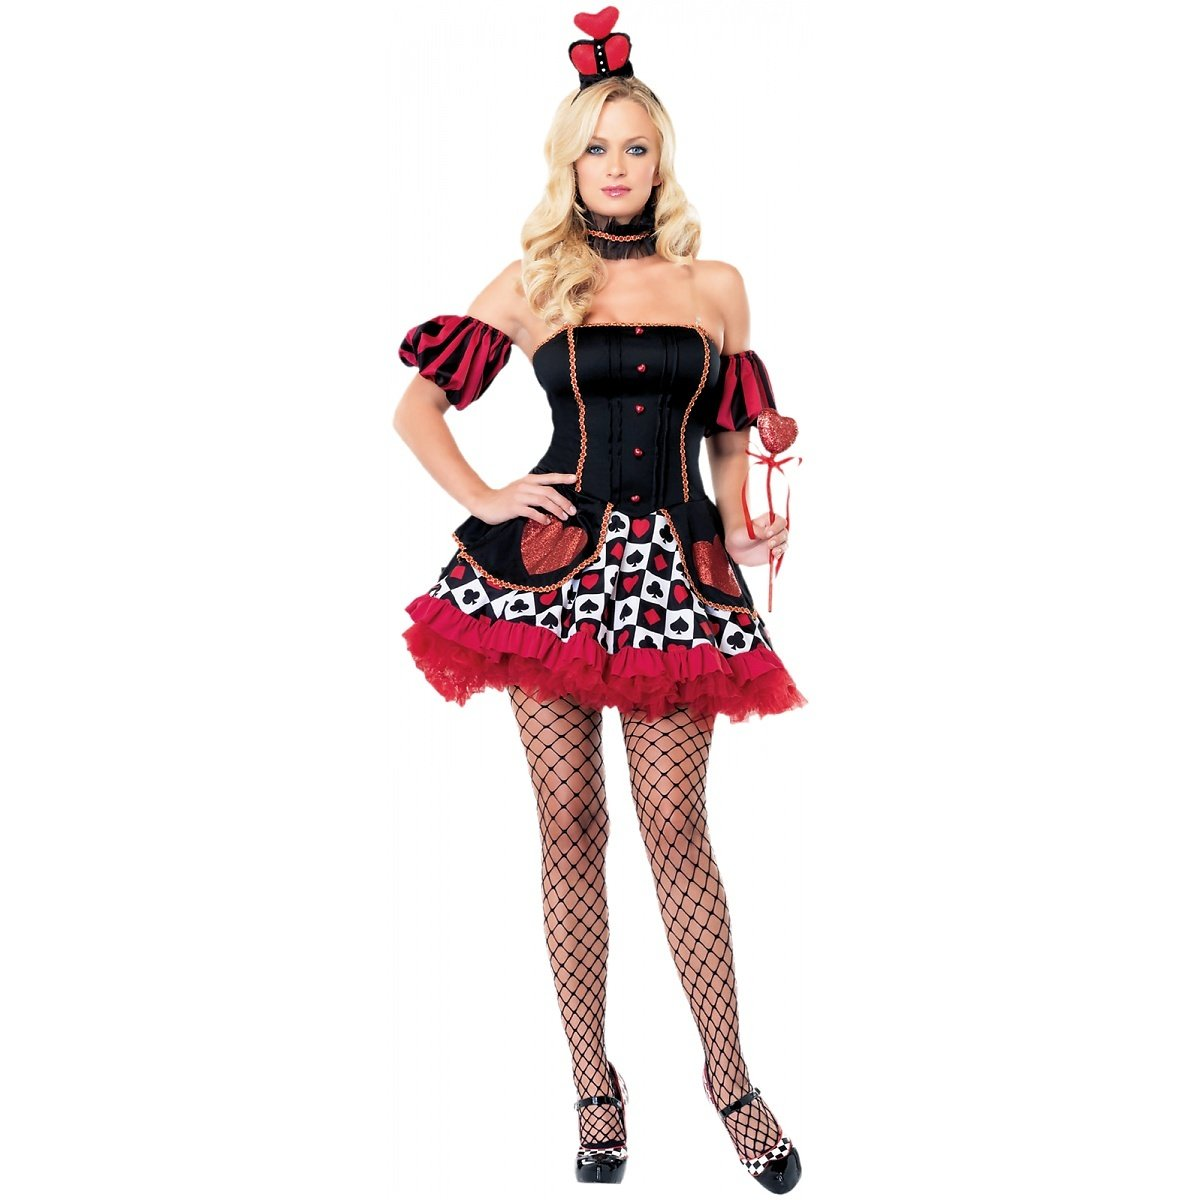 Sexy Adult Wonderland Queen of Hearts Costume (X-Small) - DeluxeAdultCostumes.com